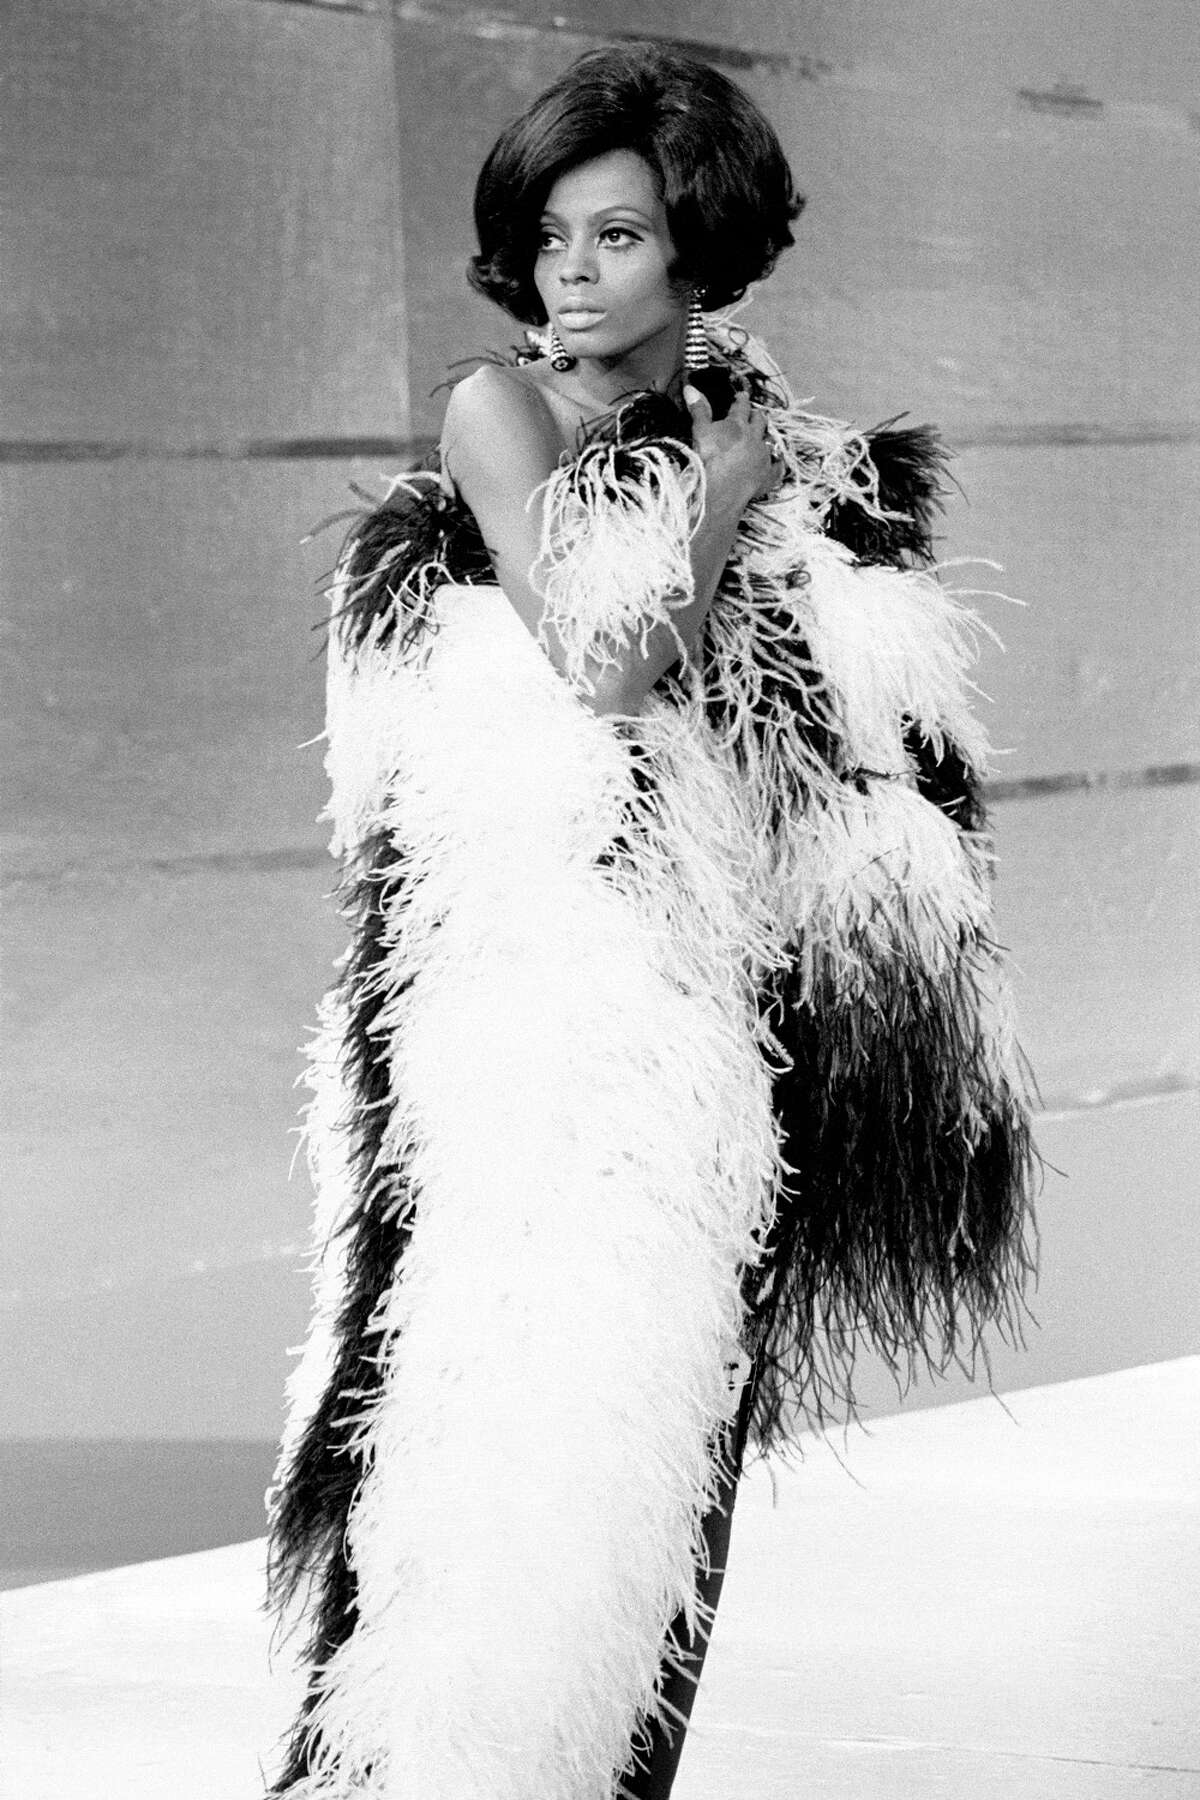 1966: Diana Ross Ross was the star of The Supremes and, later, her own solo career. When every song you sing becomes a bona fide hit, maybe you're an It girl for life.